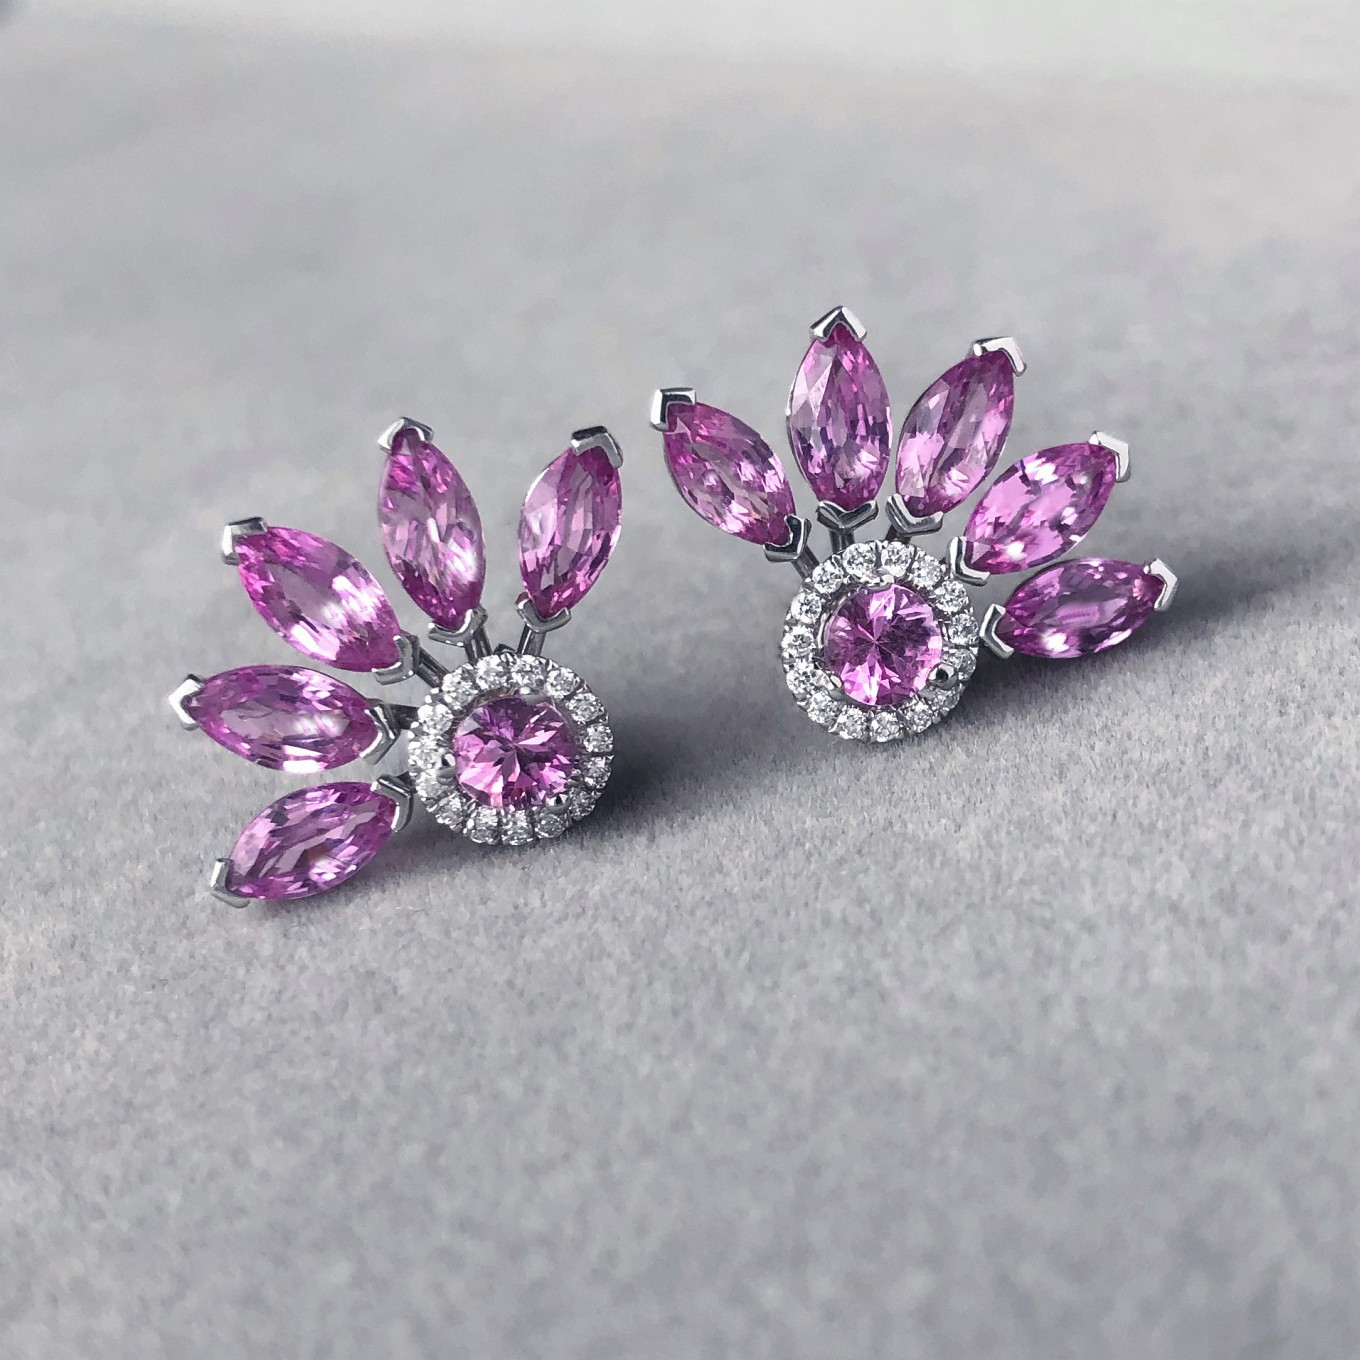 PINK SAPPHIRE FLARE JACKETS PAIRED WITH PINK SAPPHIRE & DIAMOND STUDS